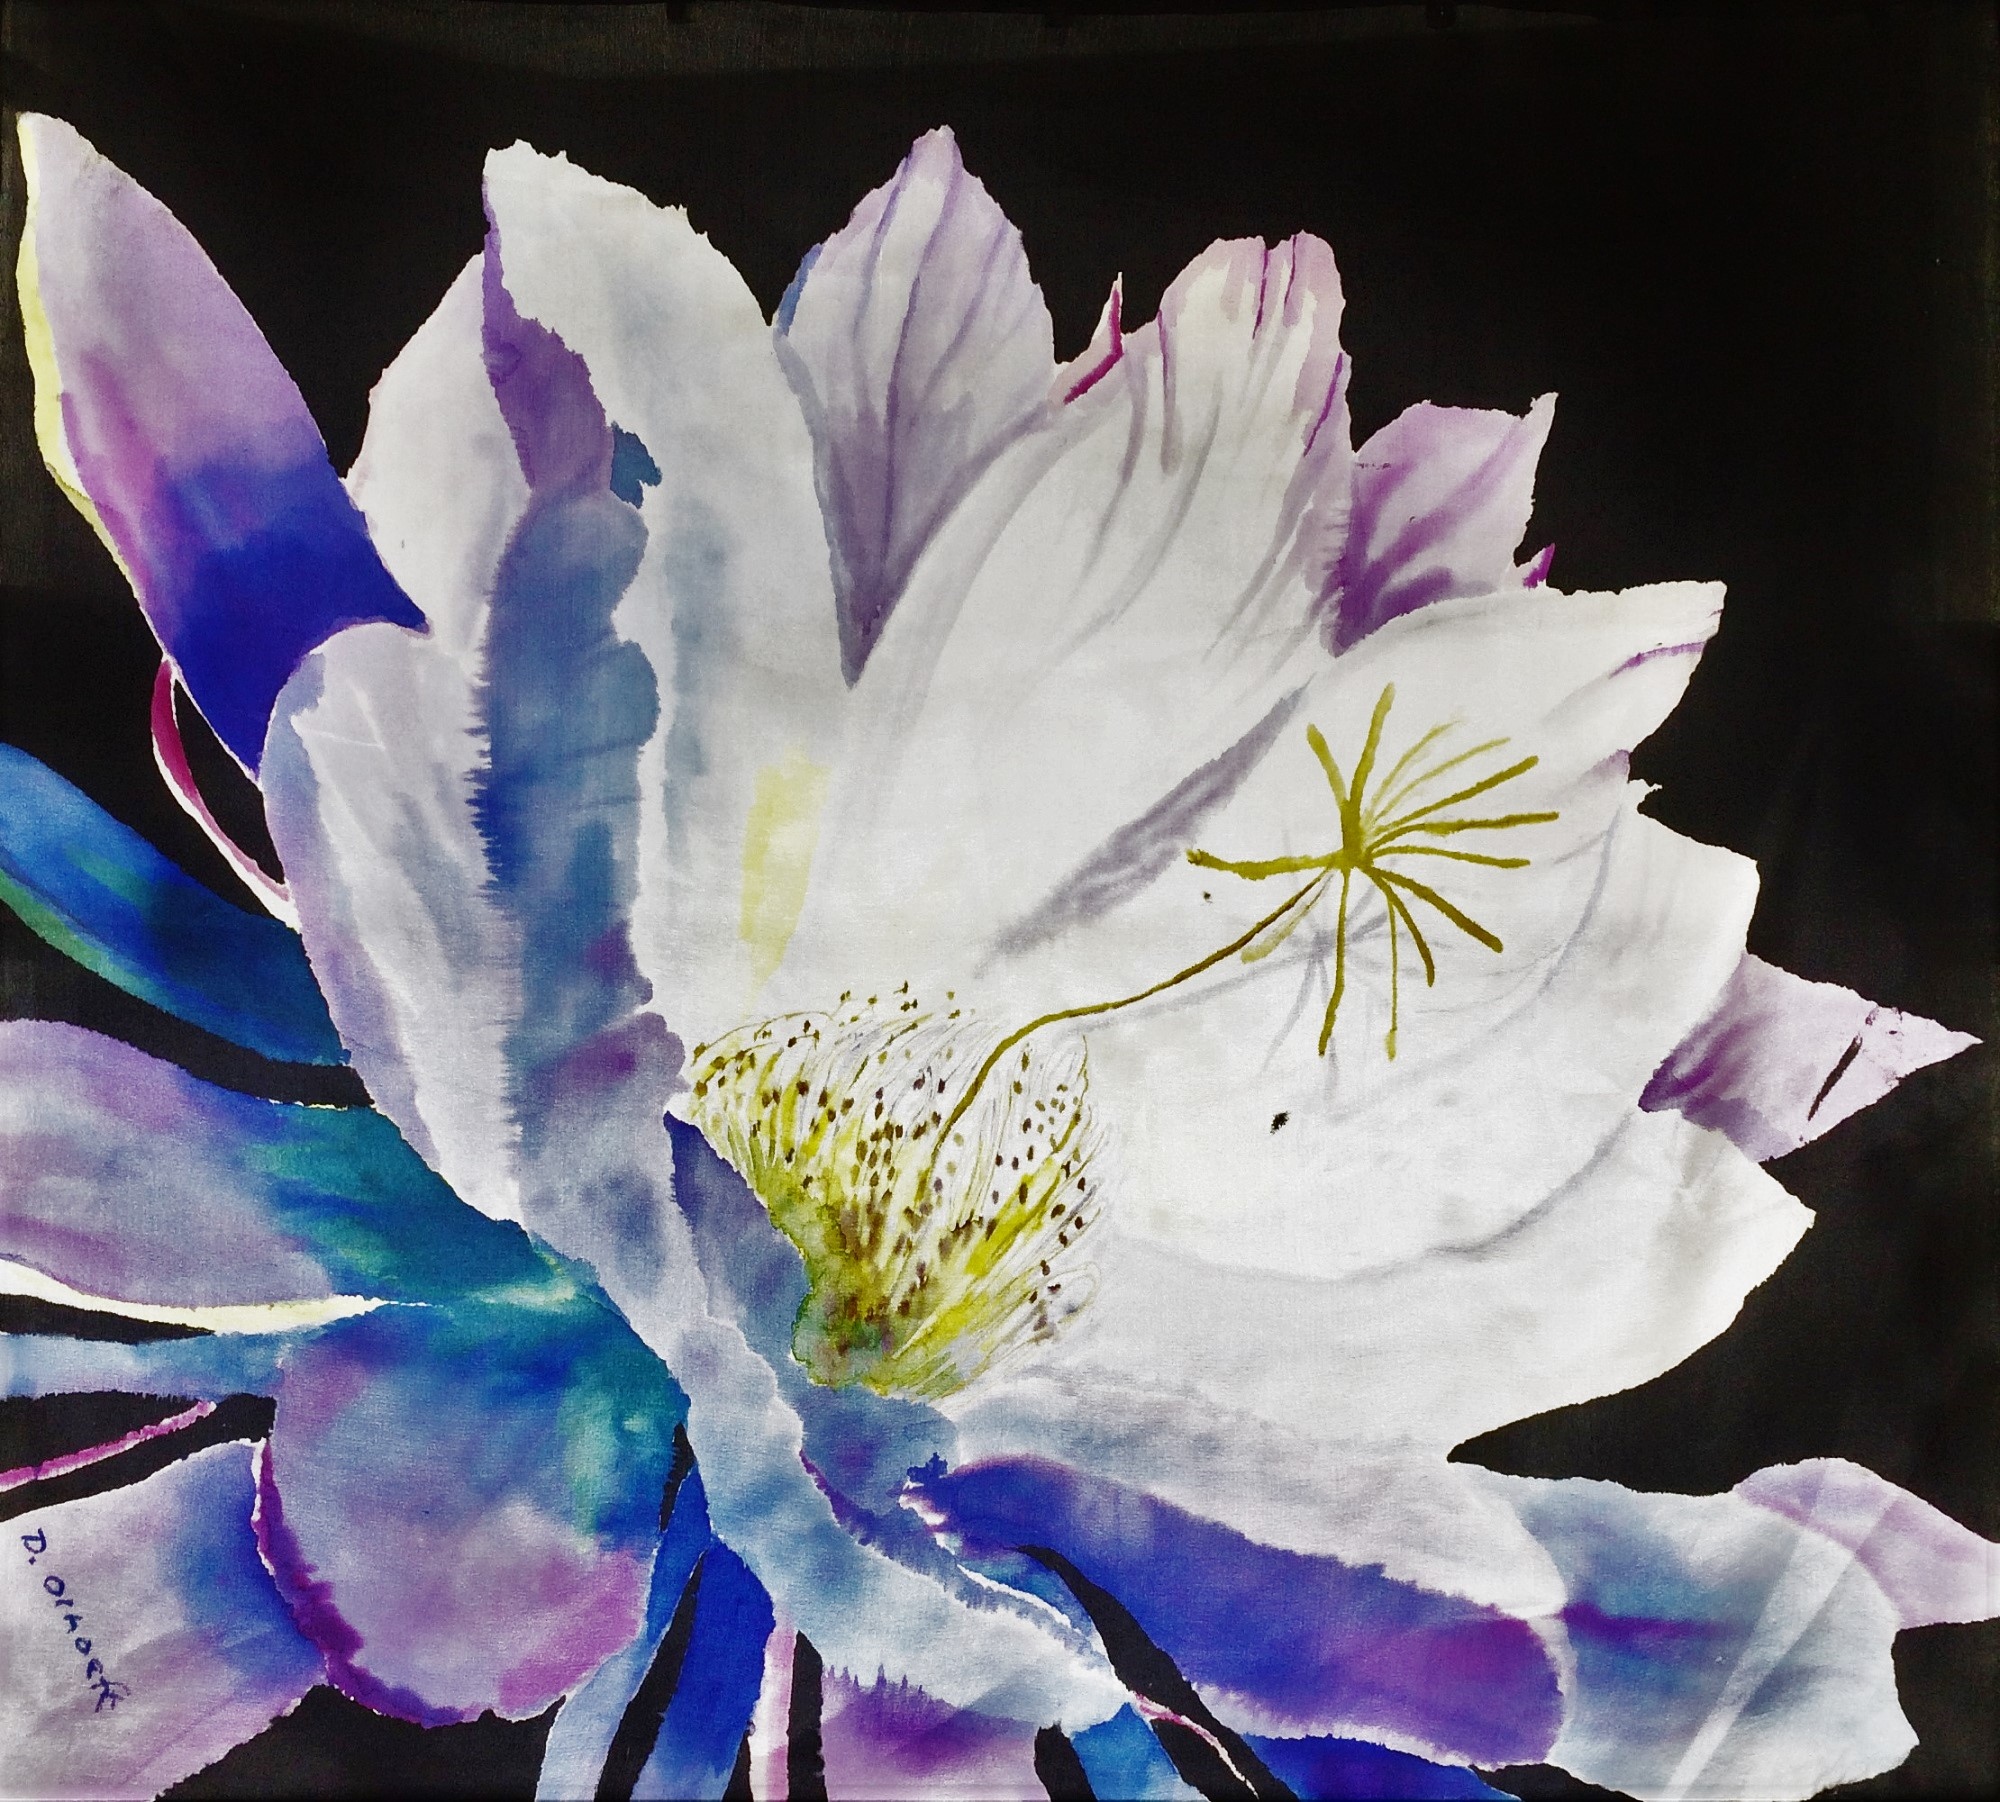 The One Night Stand of the Night Blooming Cereus -  Diane Olhoeft  Silk Painting